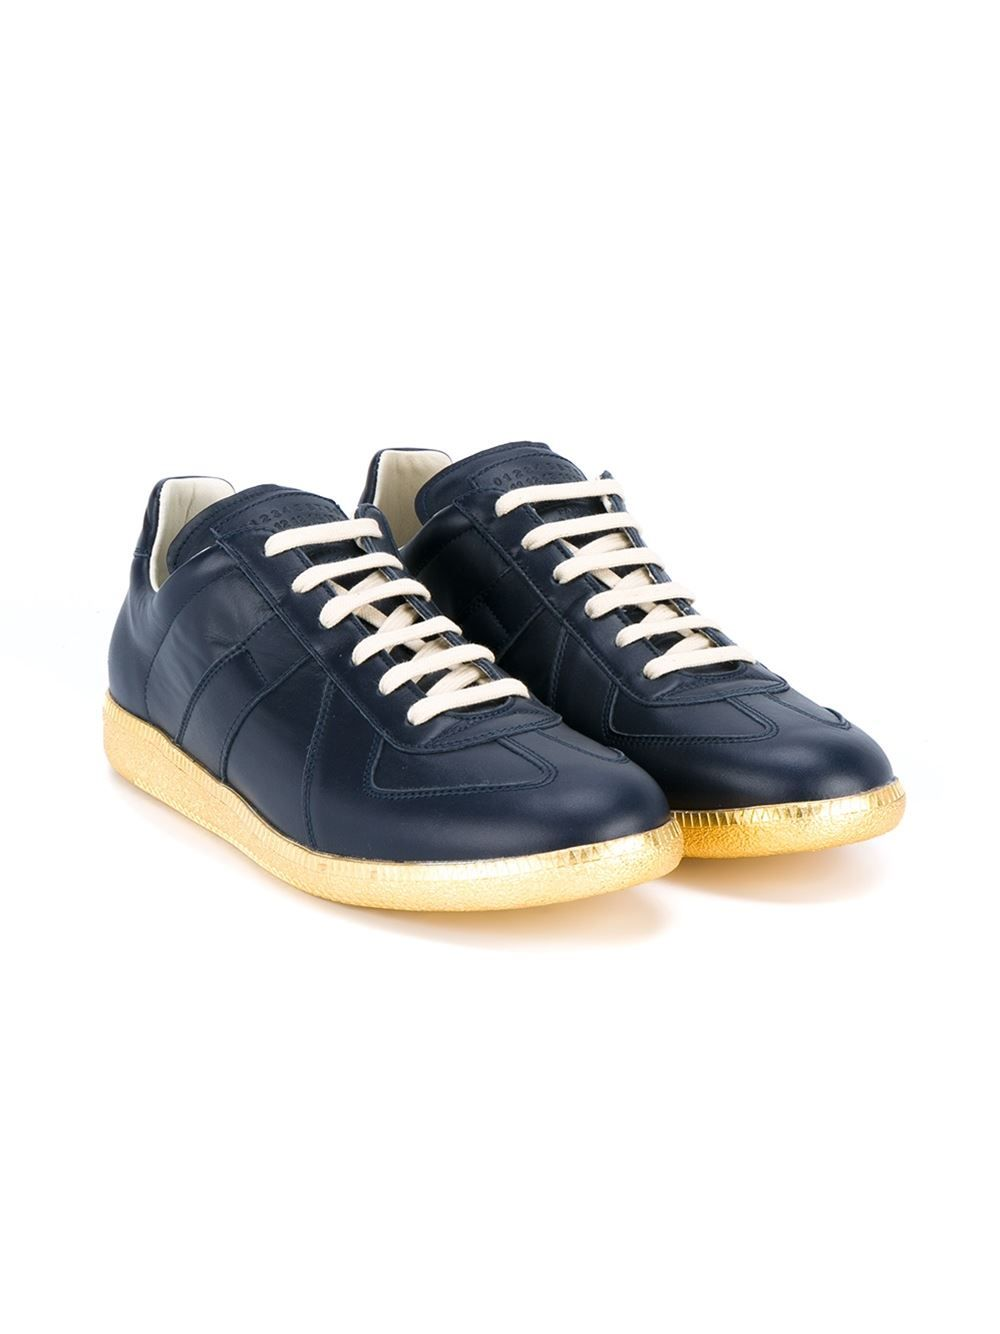 625340e04a0 These navy Maison Margiela  Replica  leather sneakers inspired by men s  70 s sports shoes